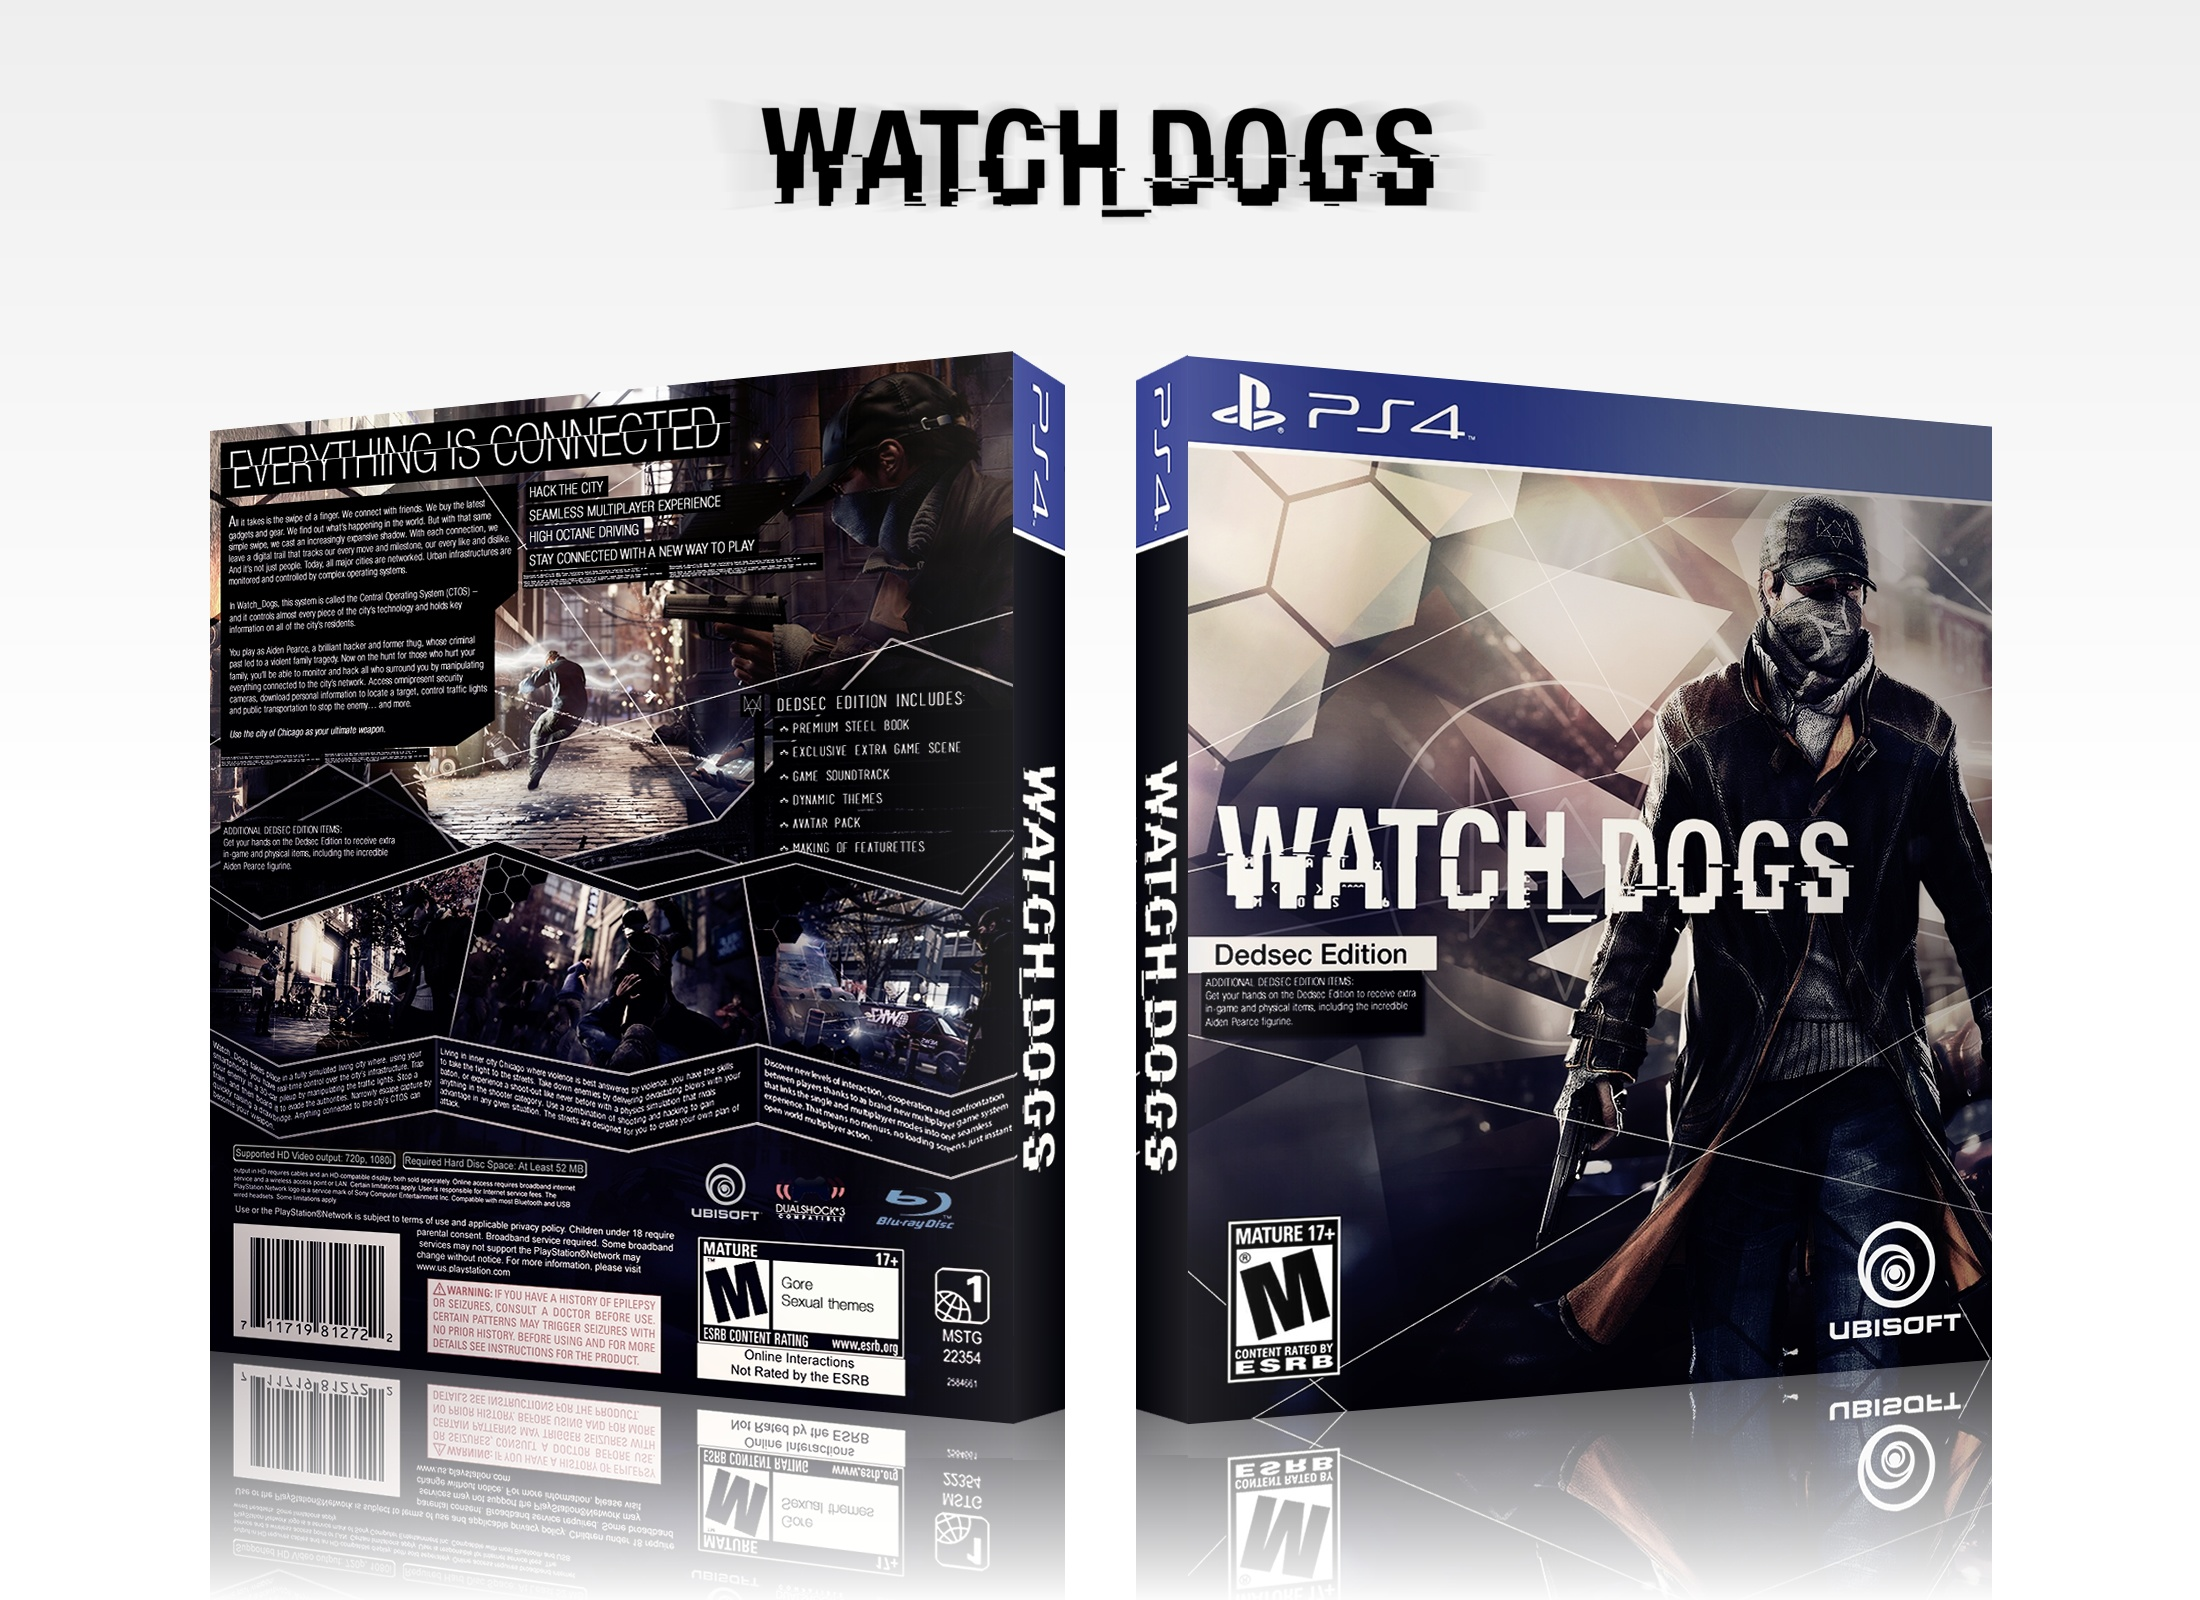 Viewing full size Watch Dogs box cover